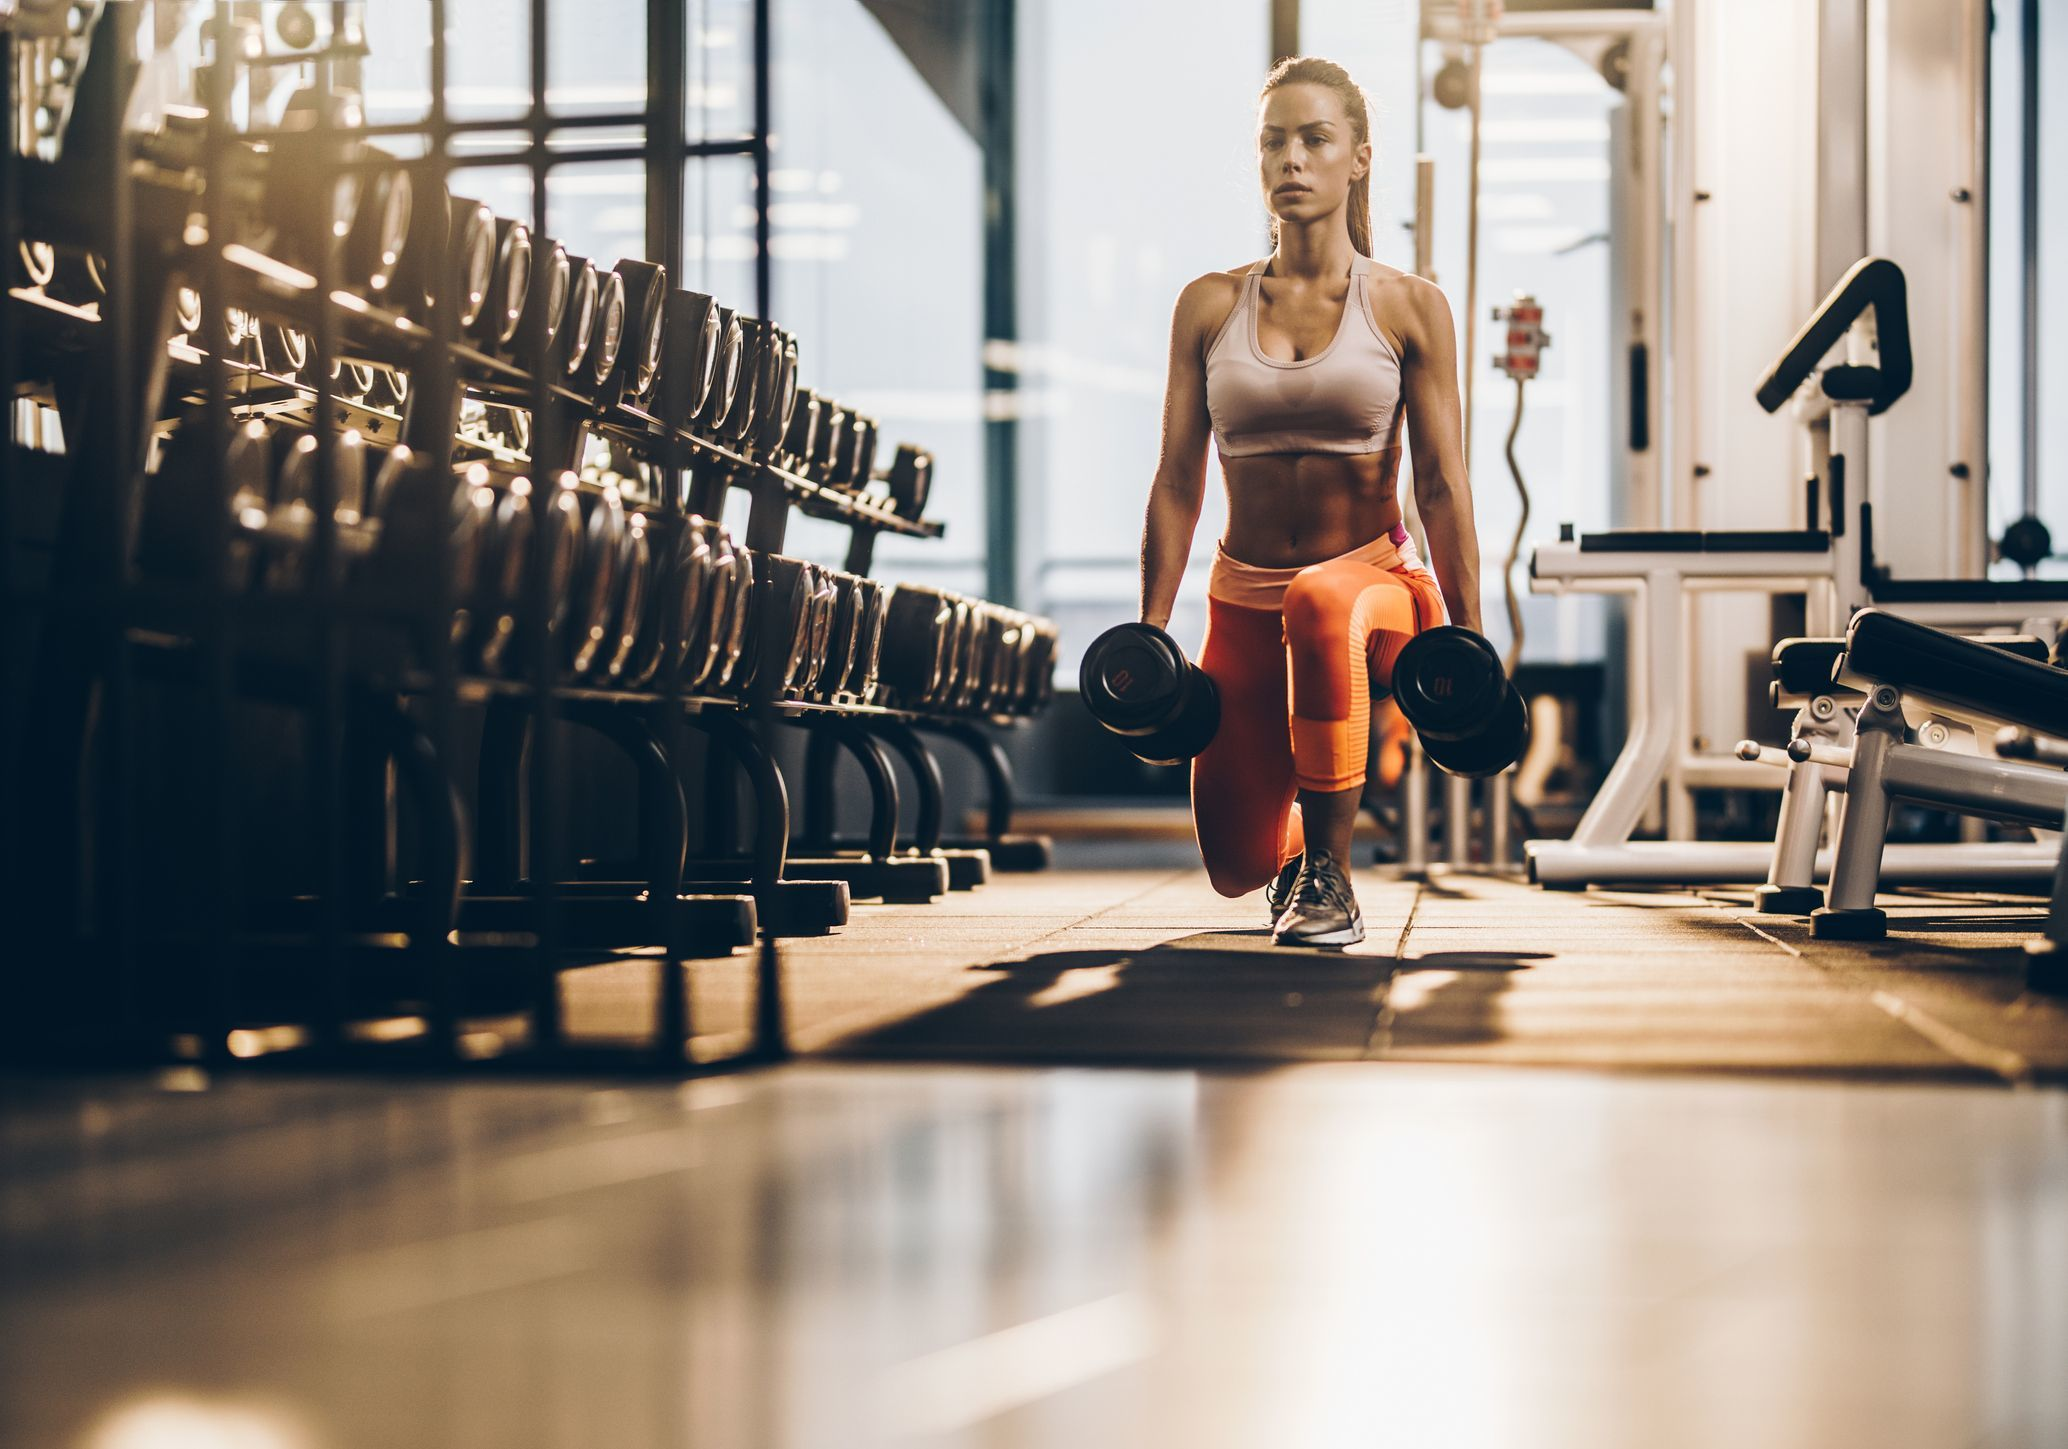 female athlete exercising with dumbbells in a lunge royalty free image 909891594 1558710148 1ae4c